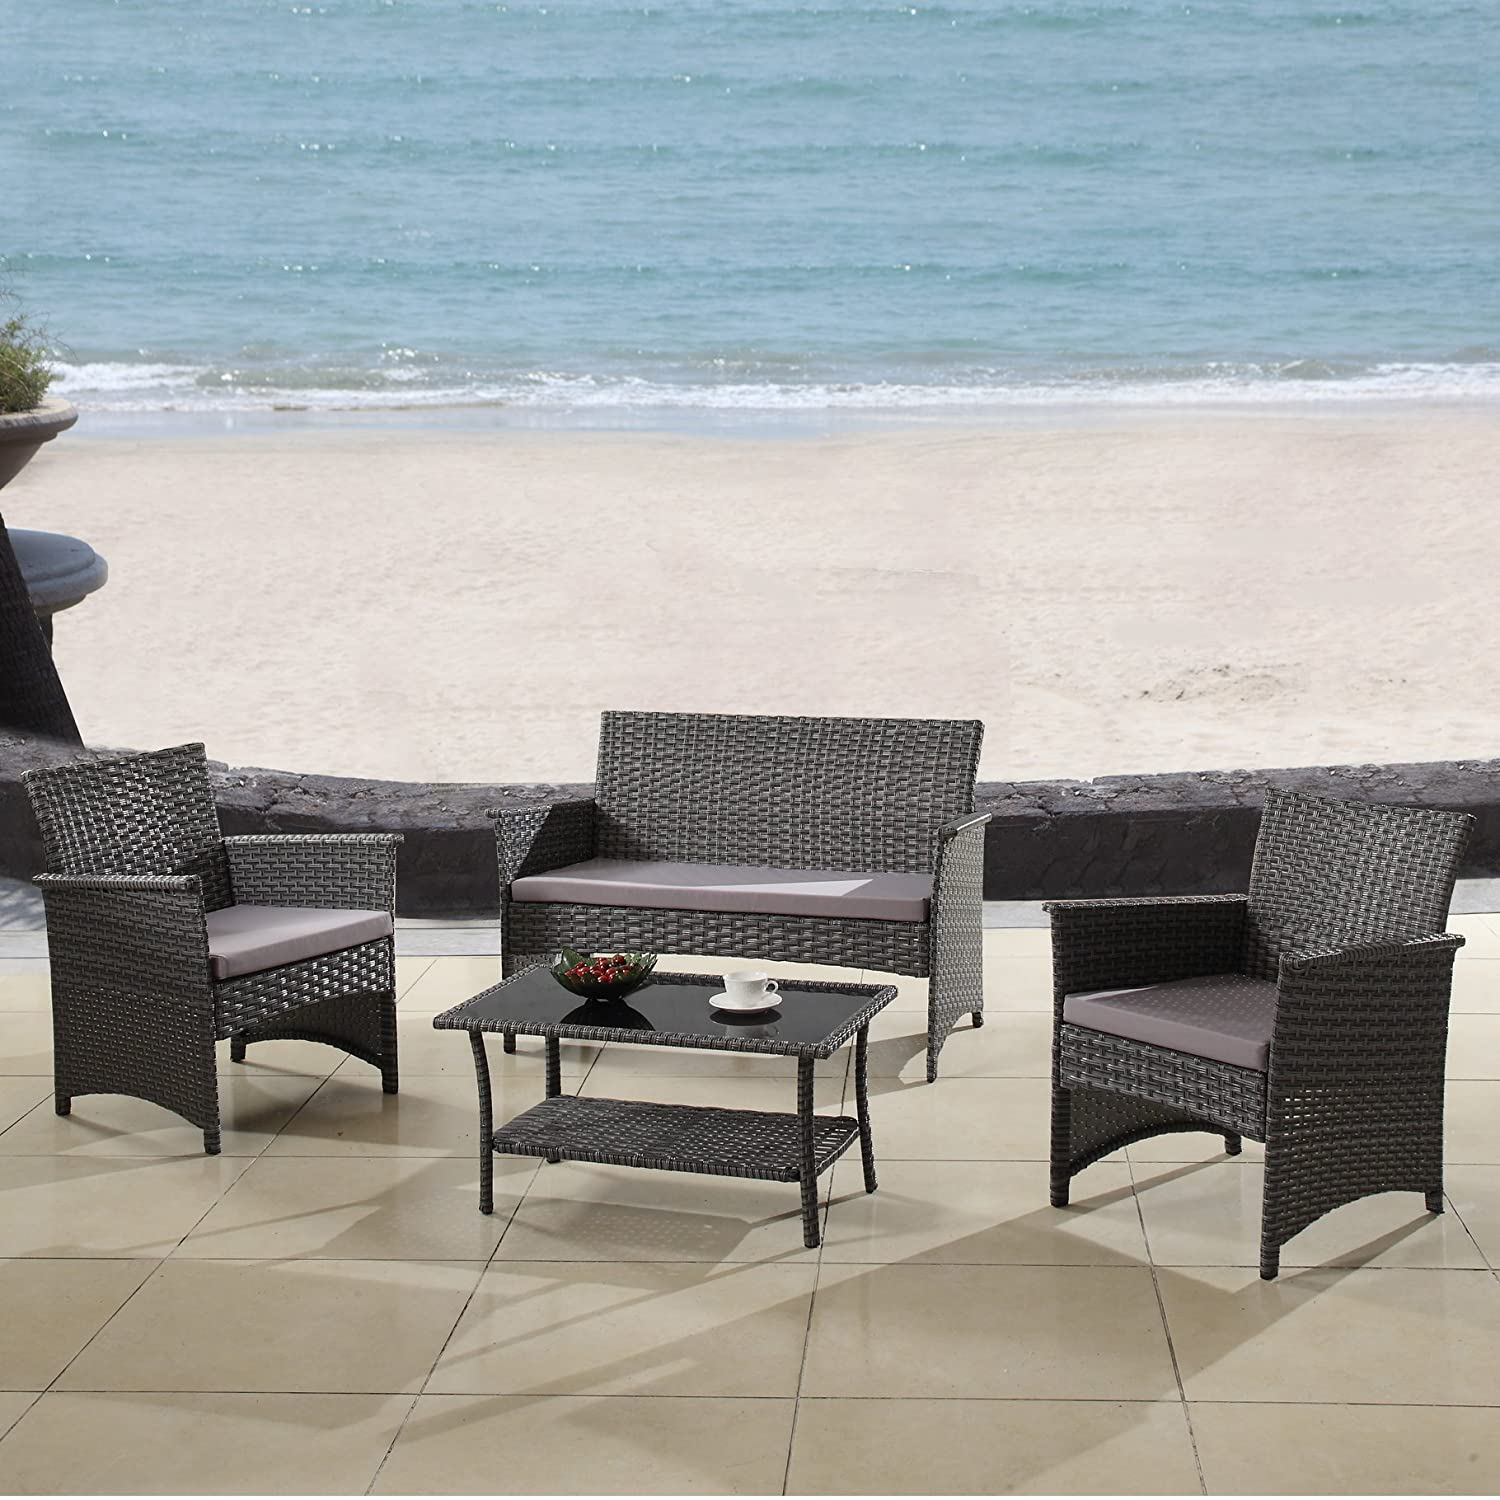 Outdoor patio furniture set cushioned 4 pieces wicker patio set table two chairs and a sofa gray finish with gray cushions outdoor furniture lawn rattan